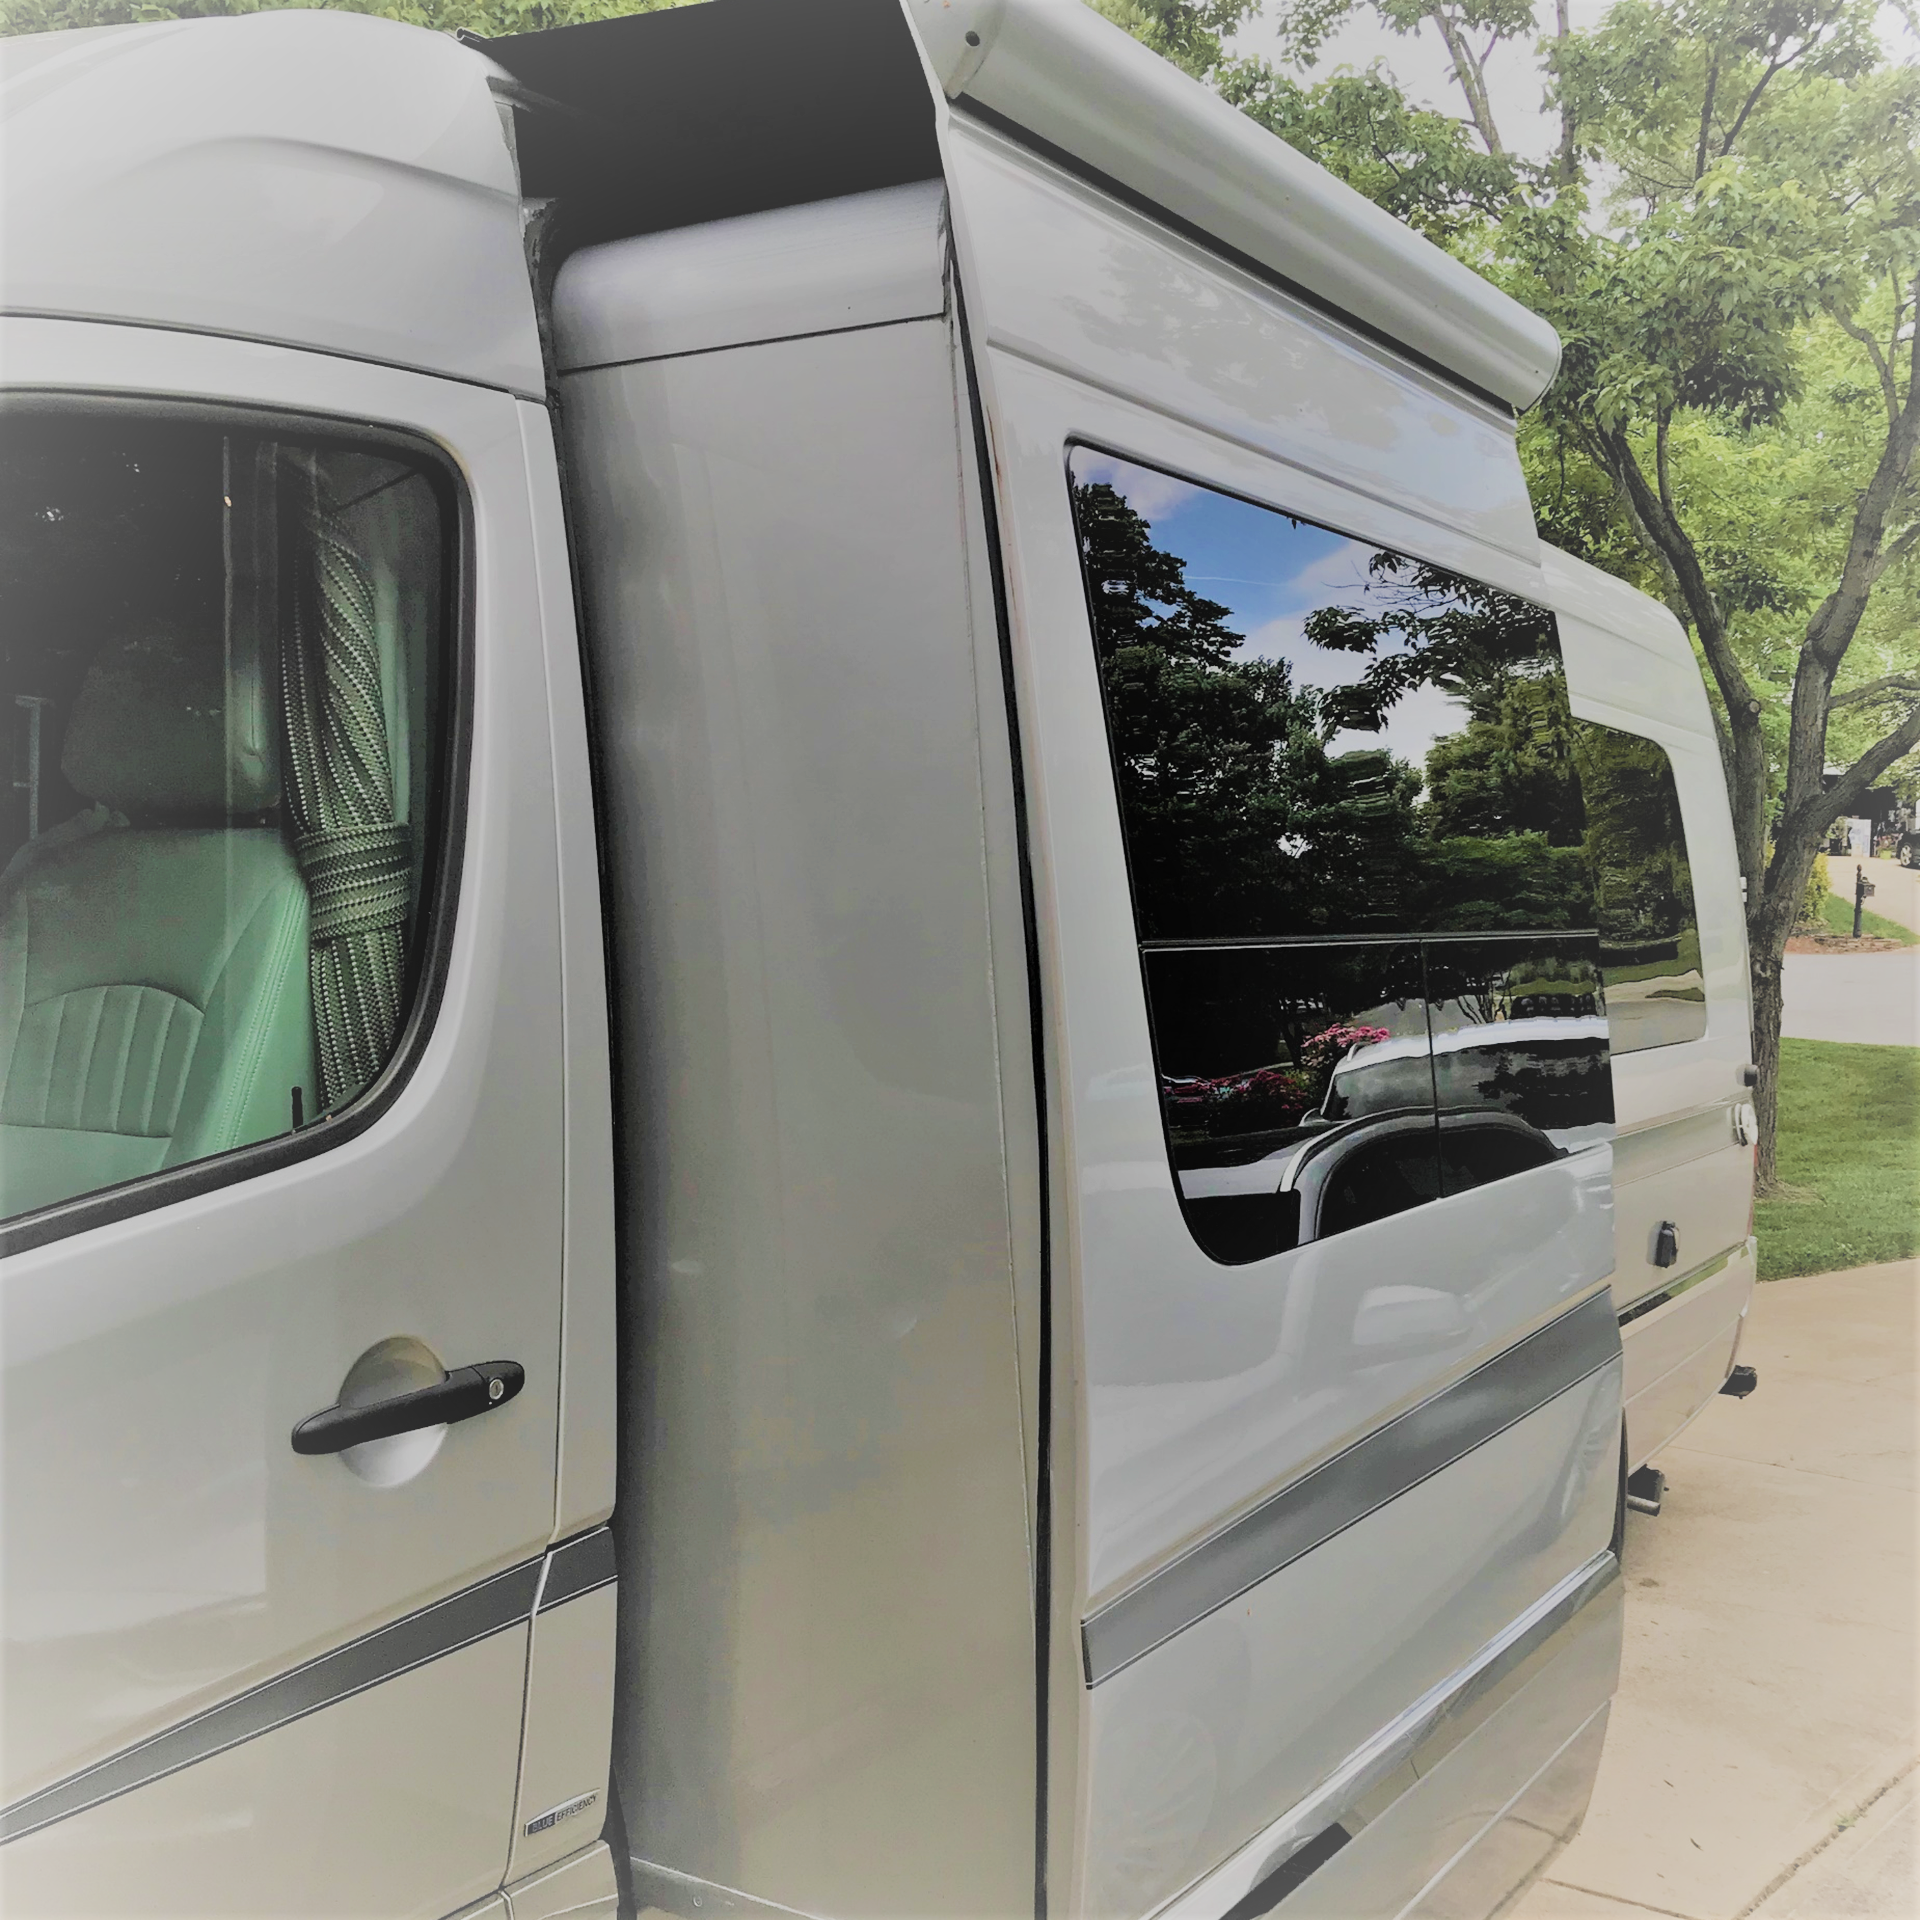 Slide out gives much more room inside. Mercedes-Benz Winnebago Era C 2015